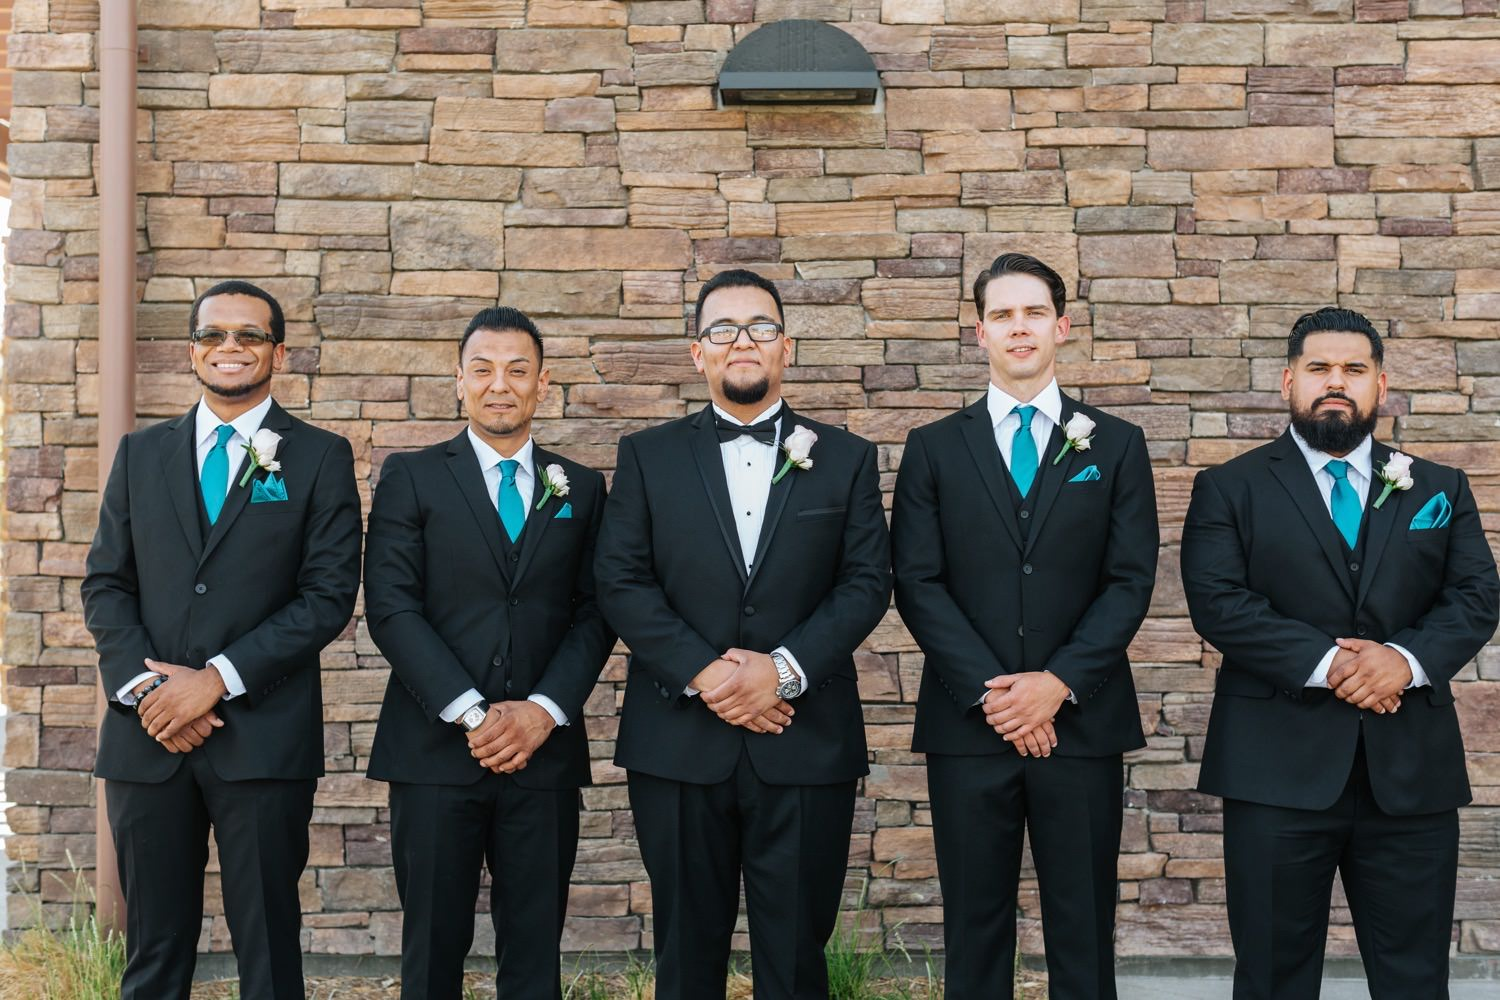 Groom and Groomsmen - Chino Hills Wedding - https://brittneyhannonphotography.com